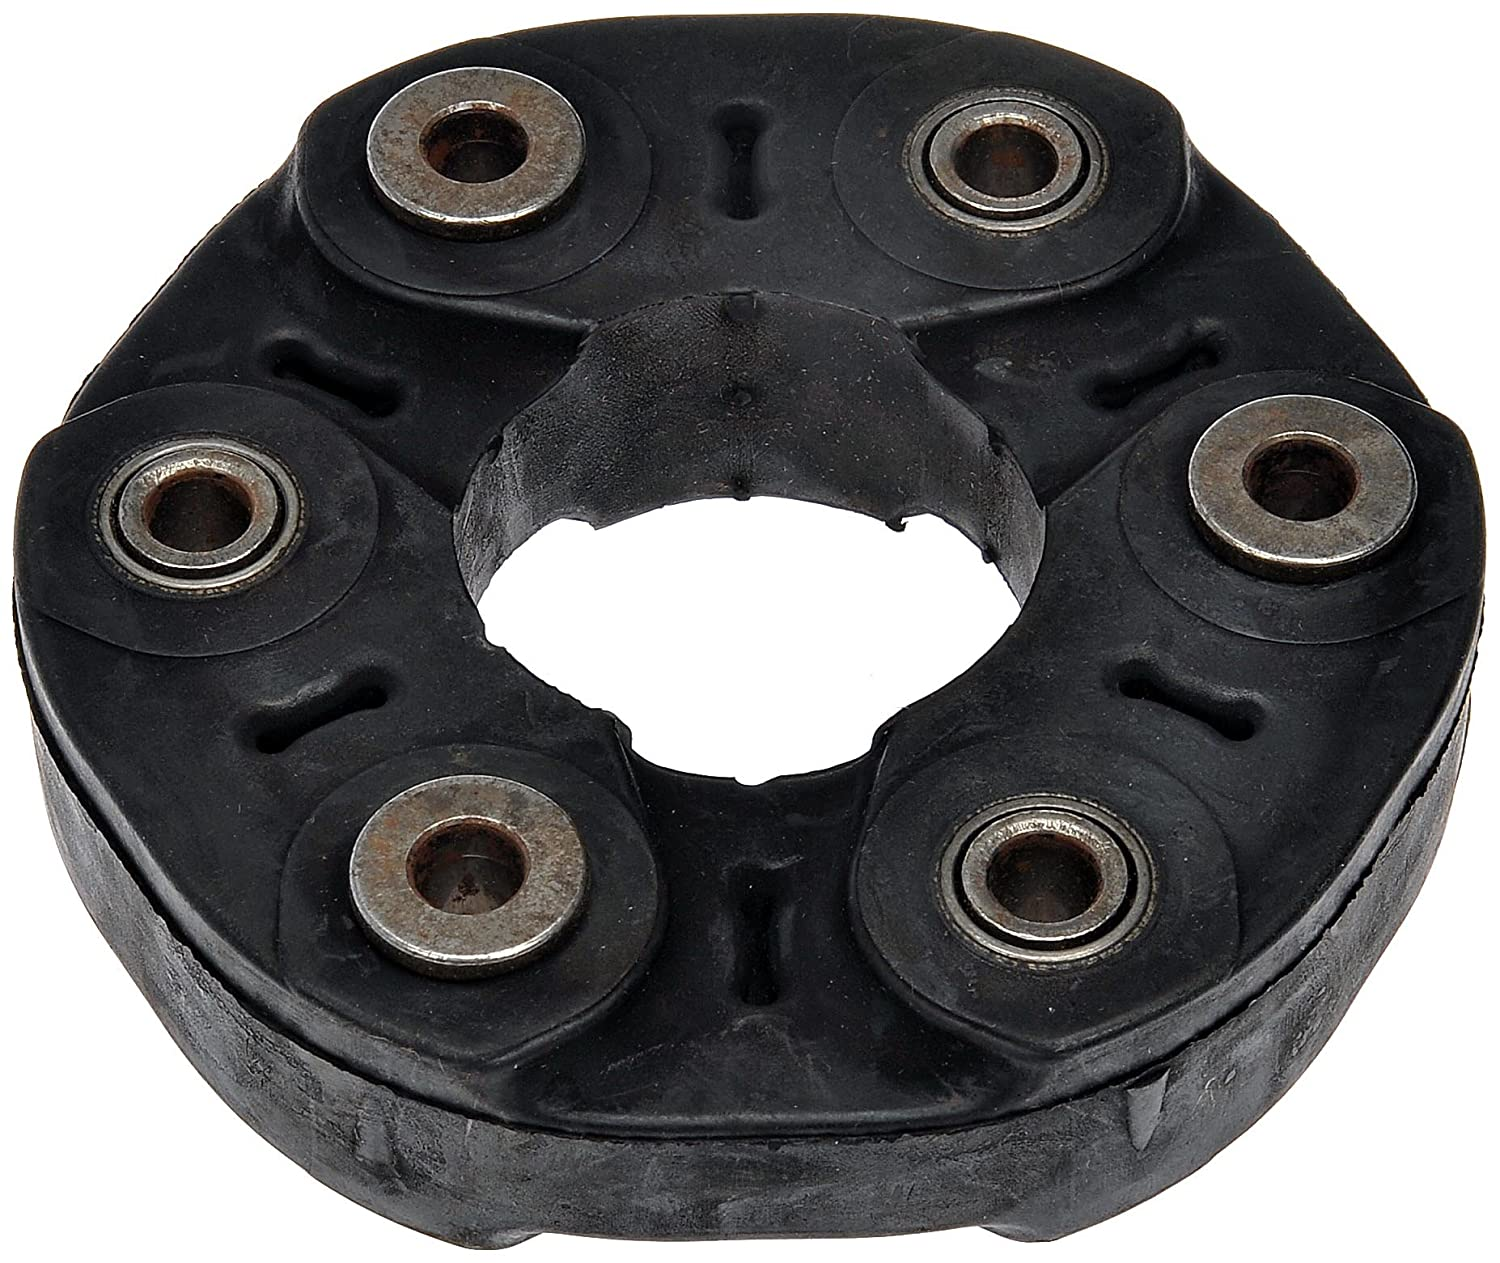 Dorman 935-406 Driveshaft Coupler